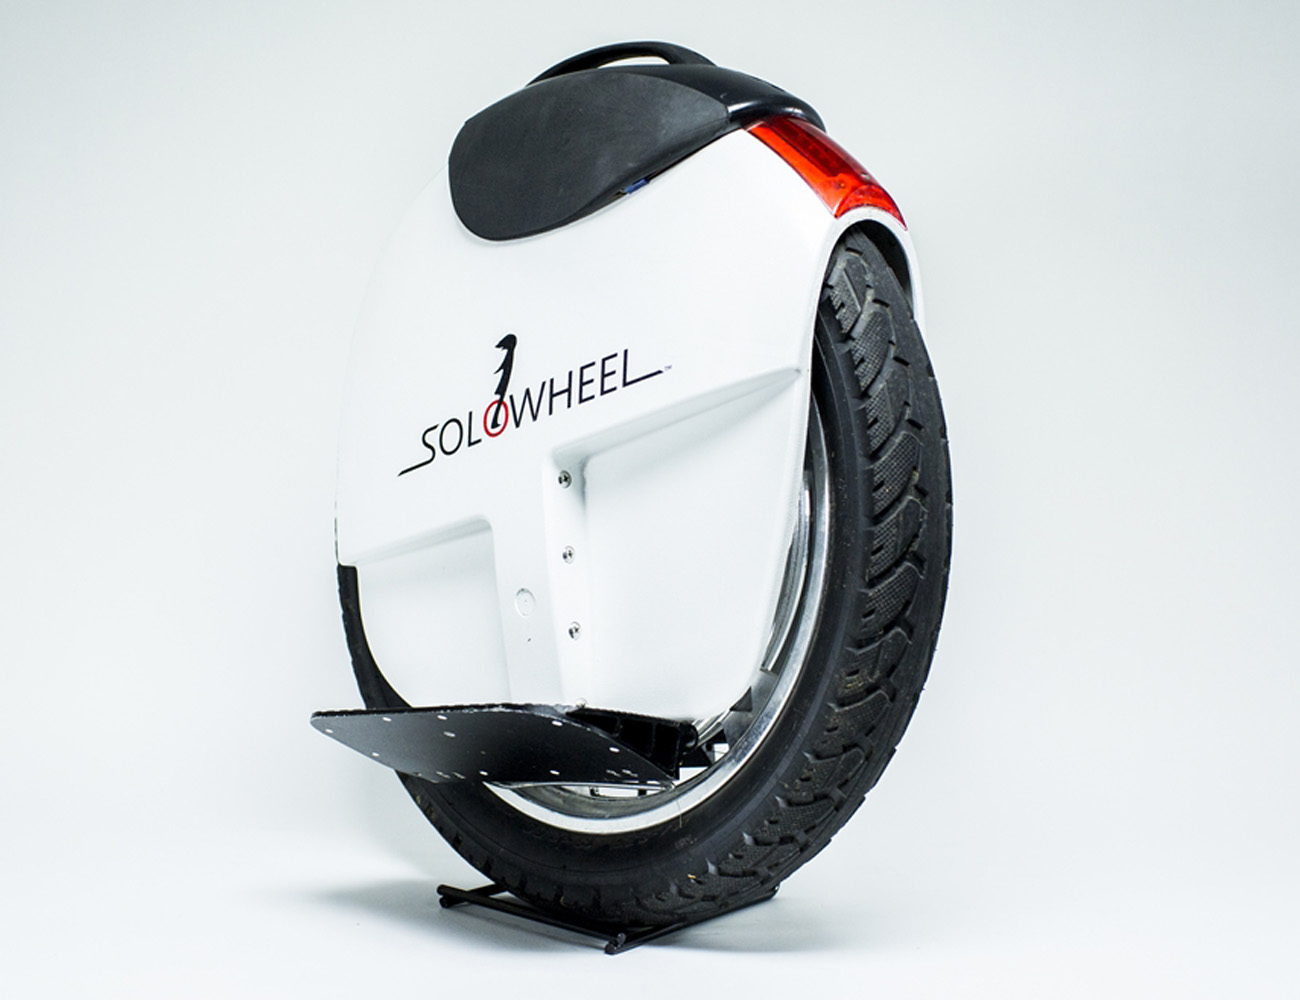 Solowheel Xtreme Electric Unicycle